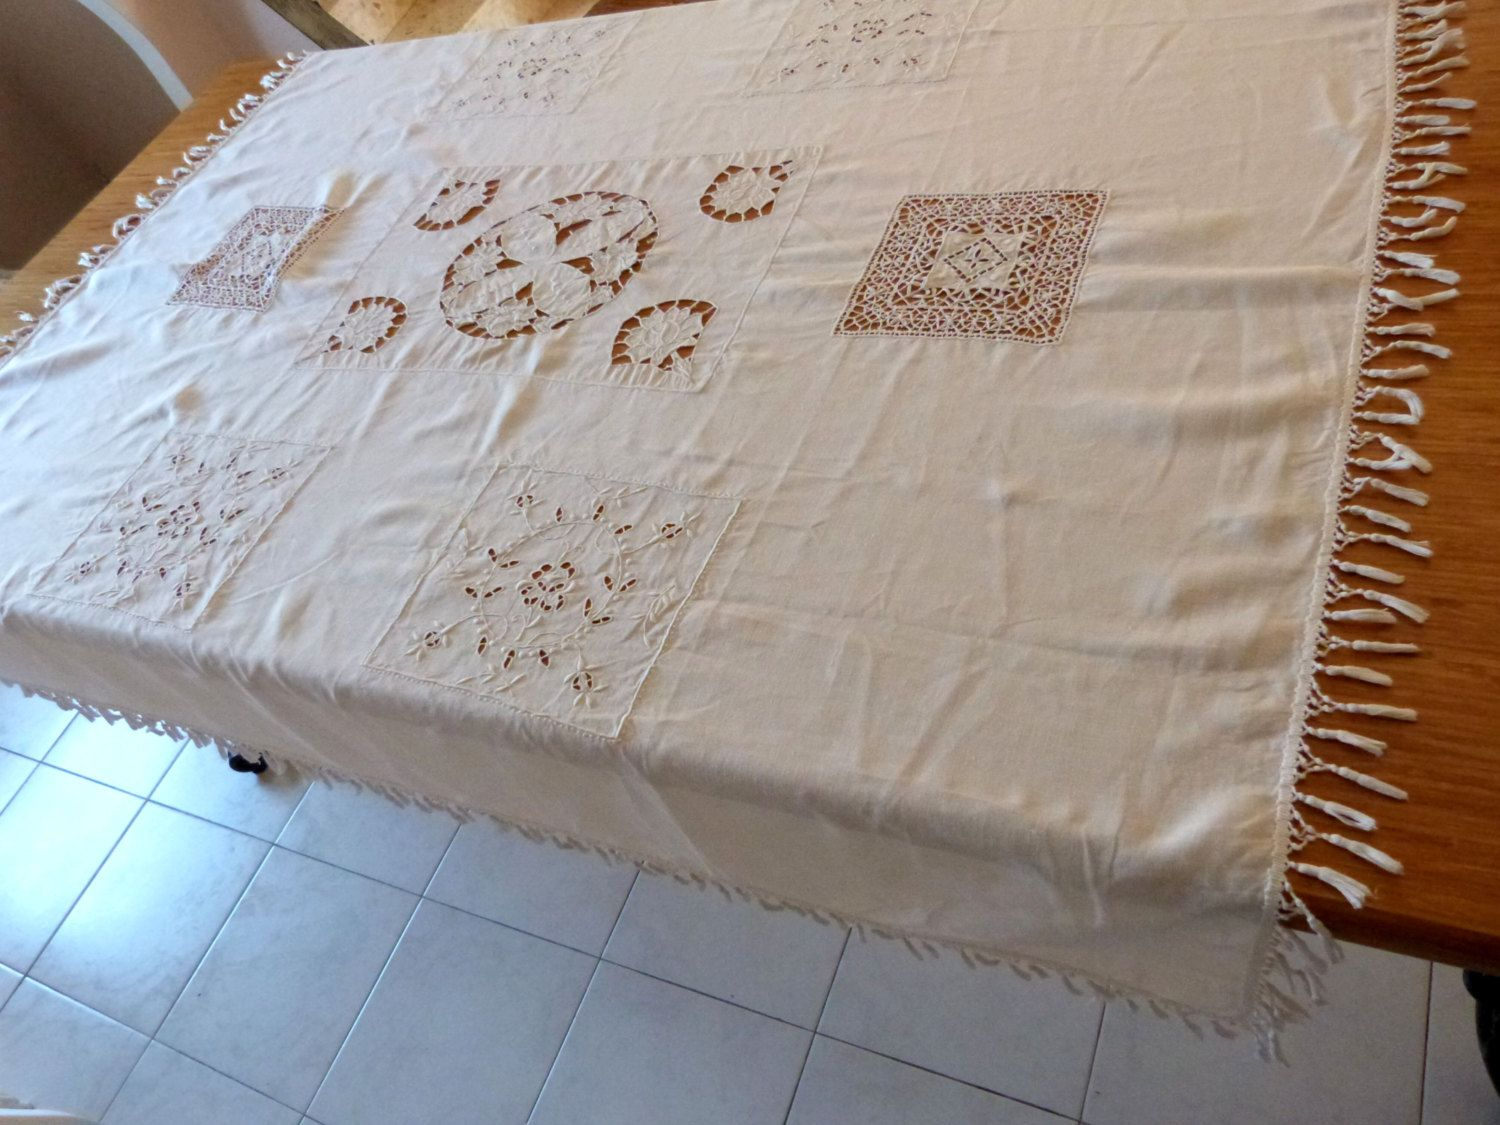 Arts and crafts table linens - Antique French Richelieu Lace Tablecloth Handworked Floral Needle Lace W Drawnwork White Lace Table Cloth French Table Linens Arts And Craft